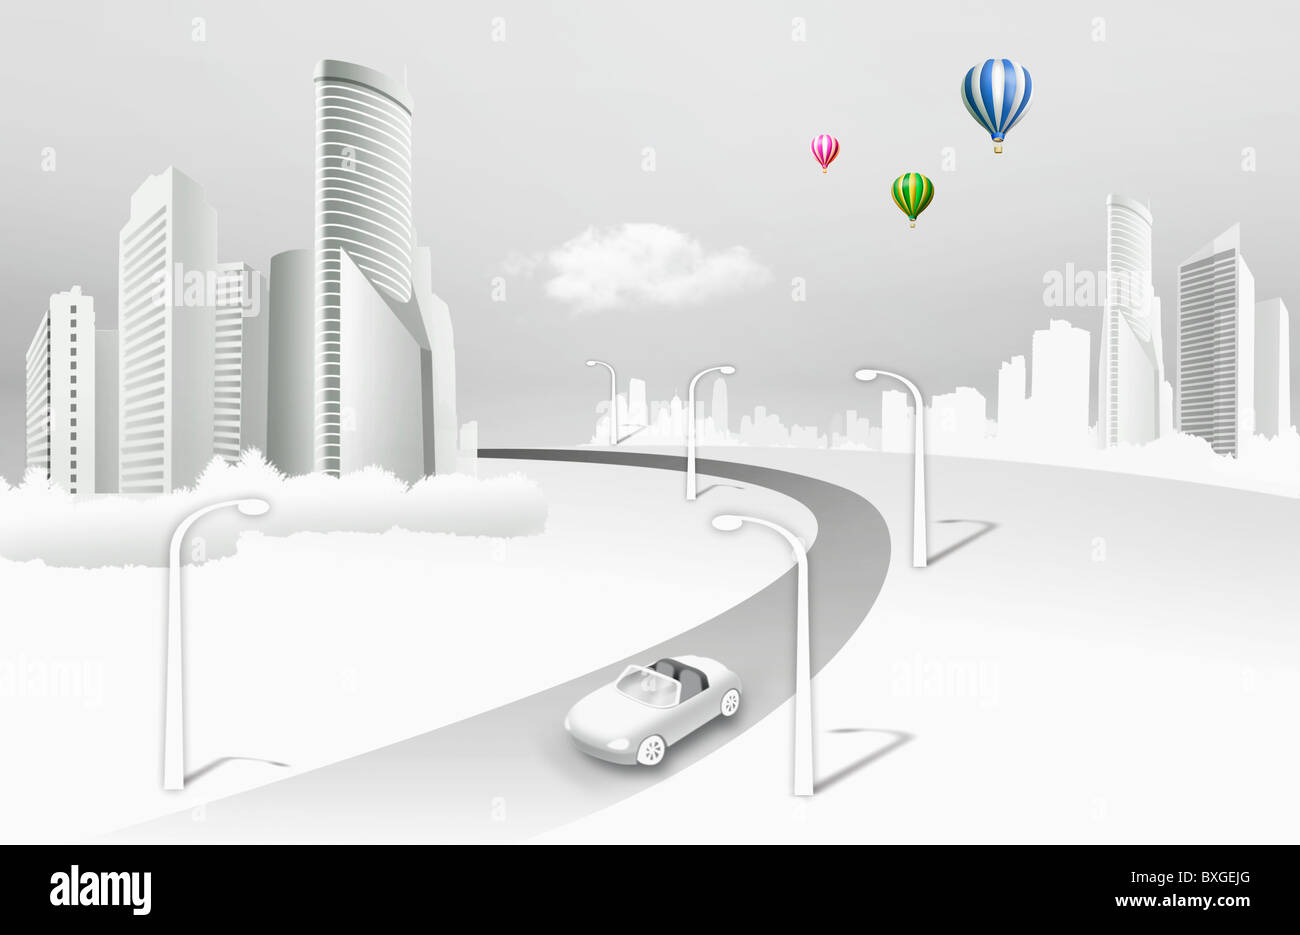 urban scenery in illustration - Stock Image